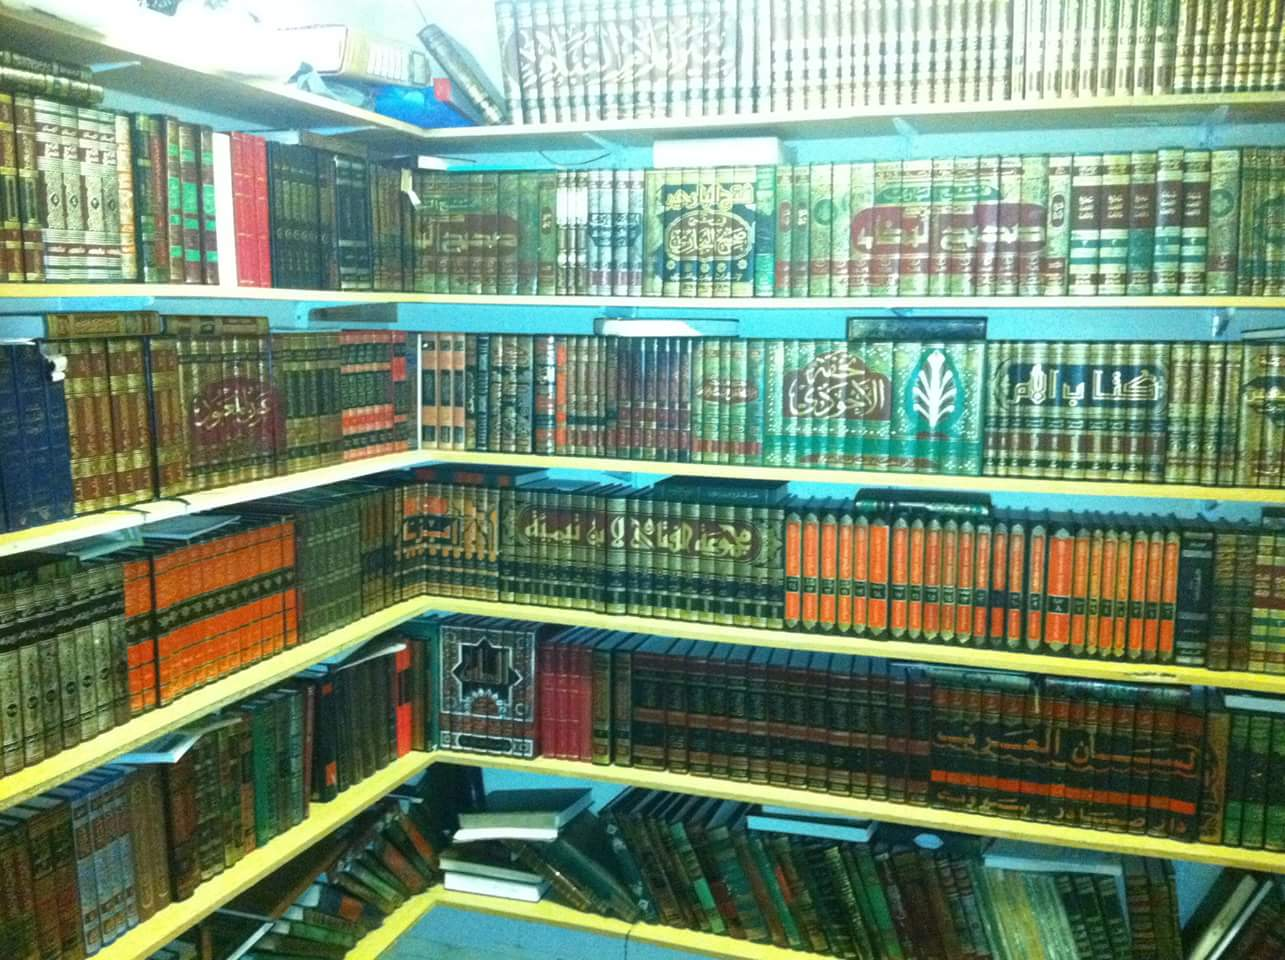 The men's old Library